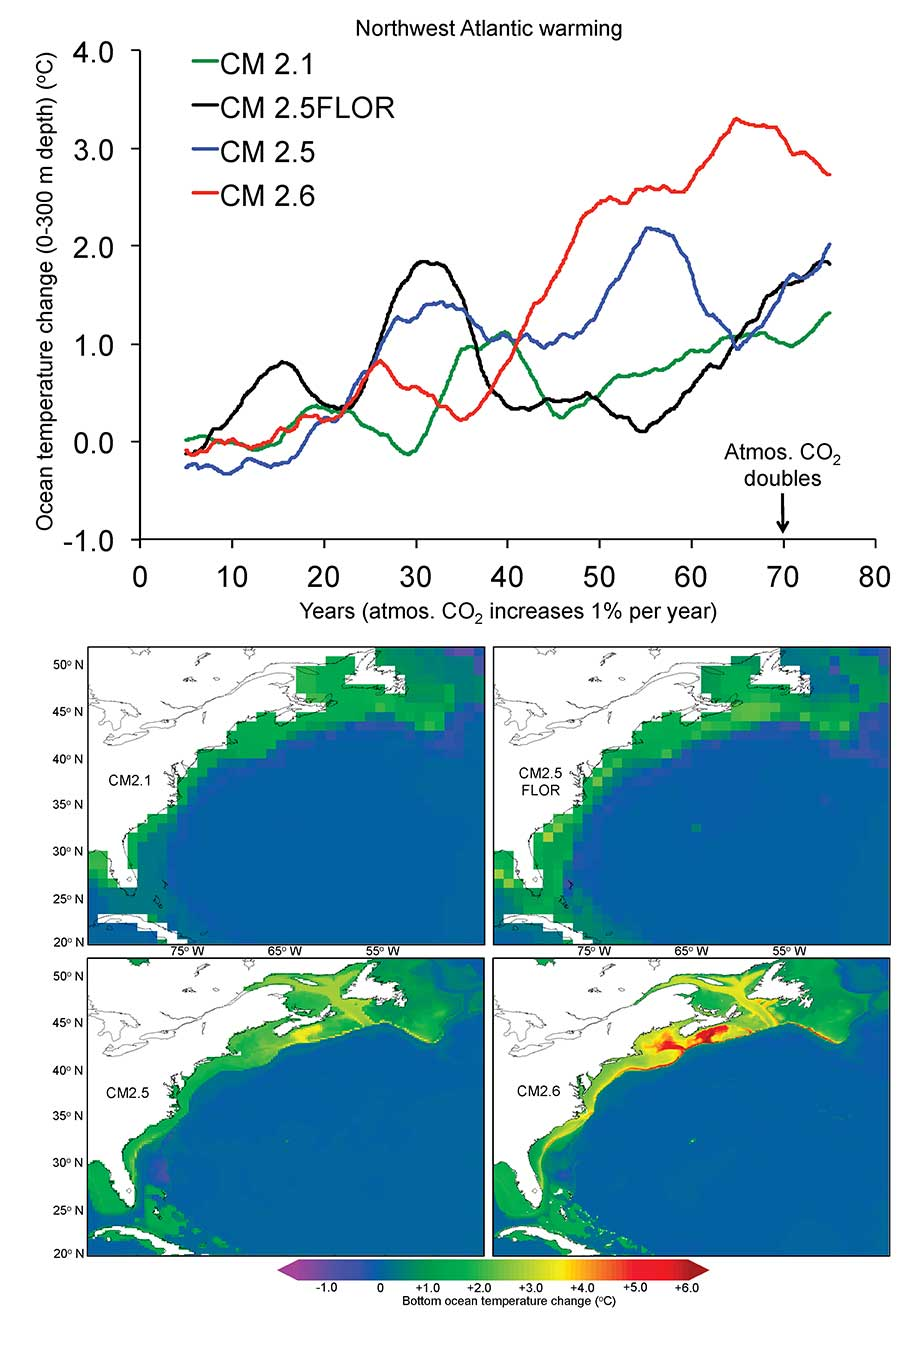 Northwest Atlantic upper-ocean (0-300 m) and bottom temperature change after a doubling of global atmospheric CO2 among four GFDL climate models of varying ocean and atmosphere resolution.